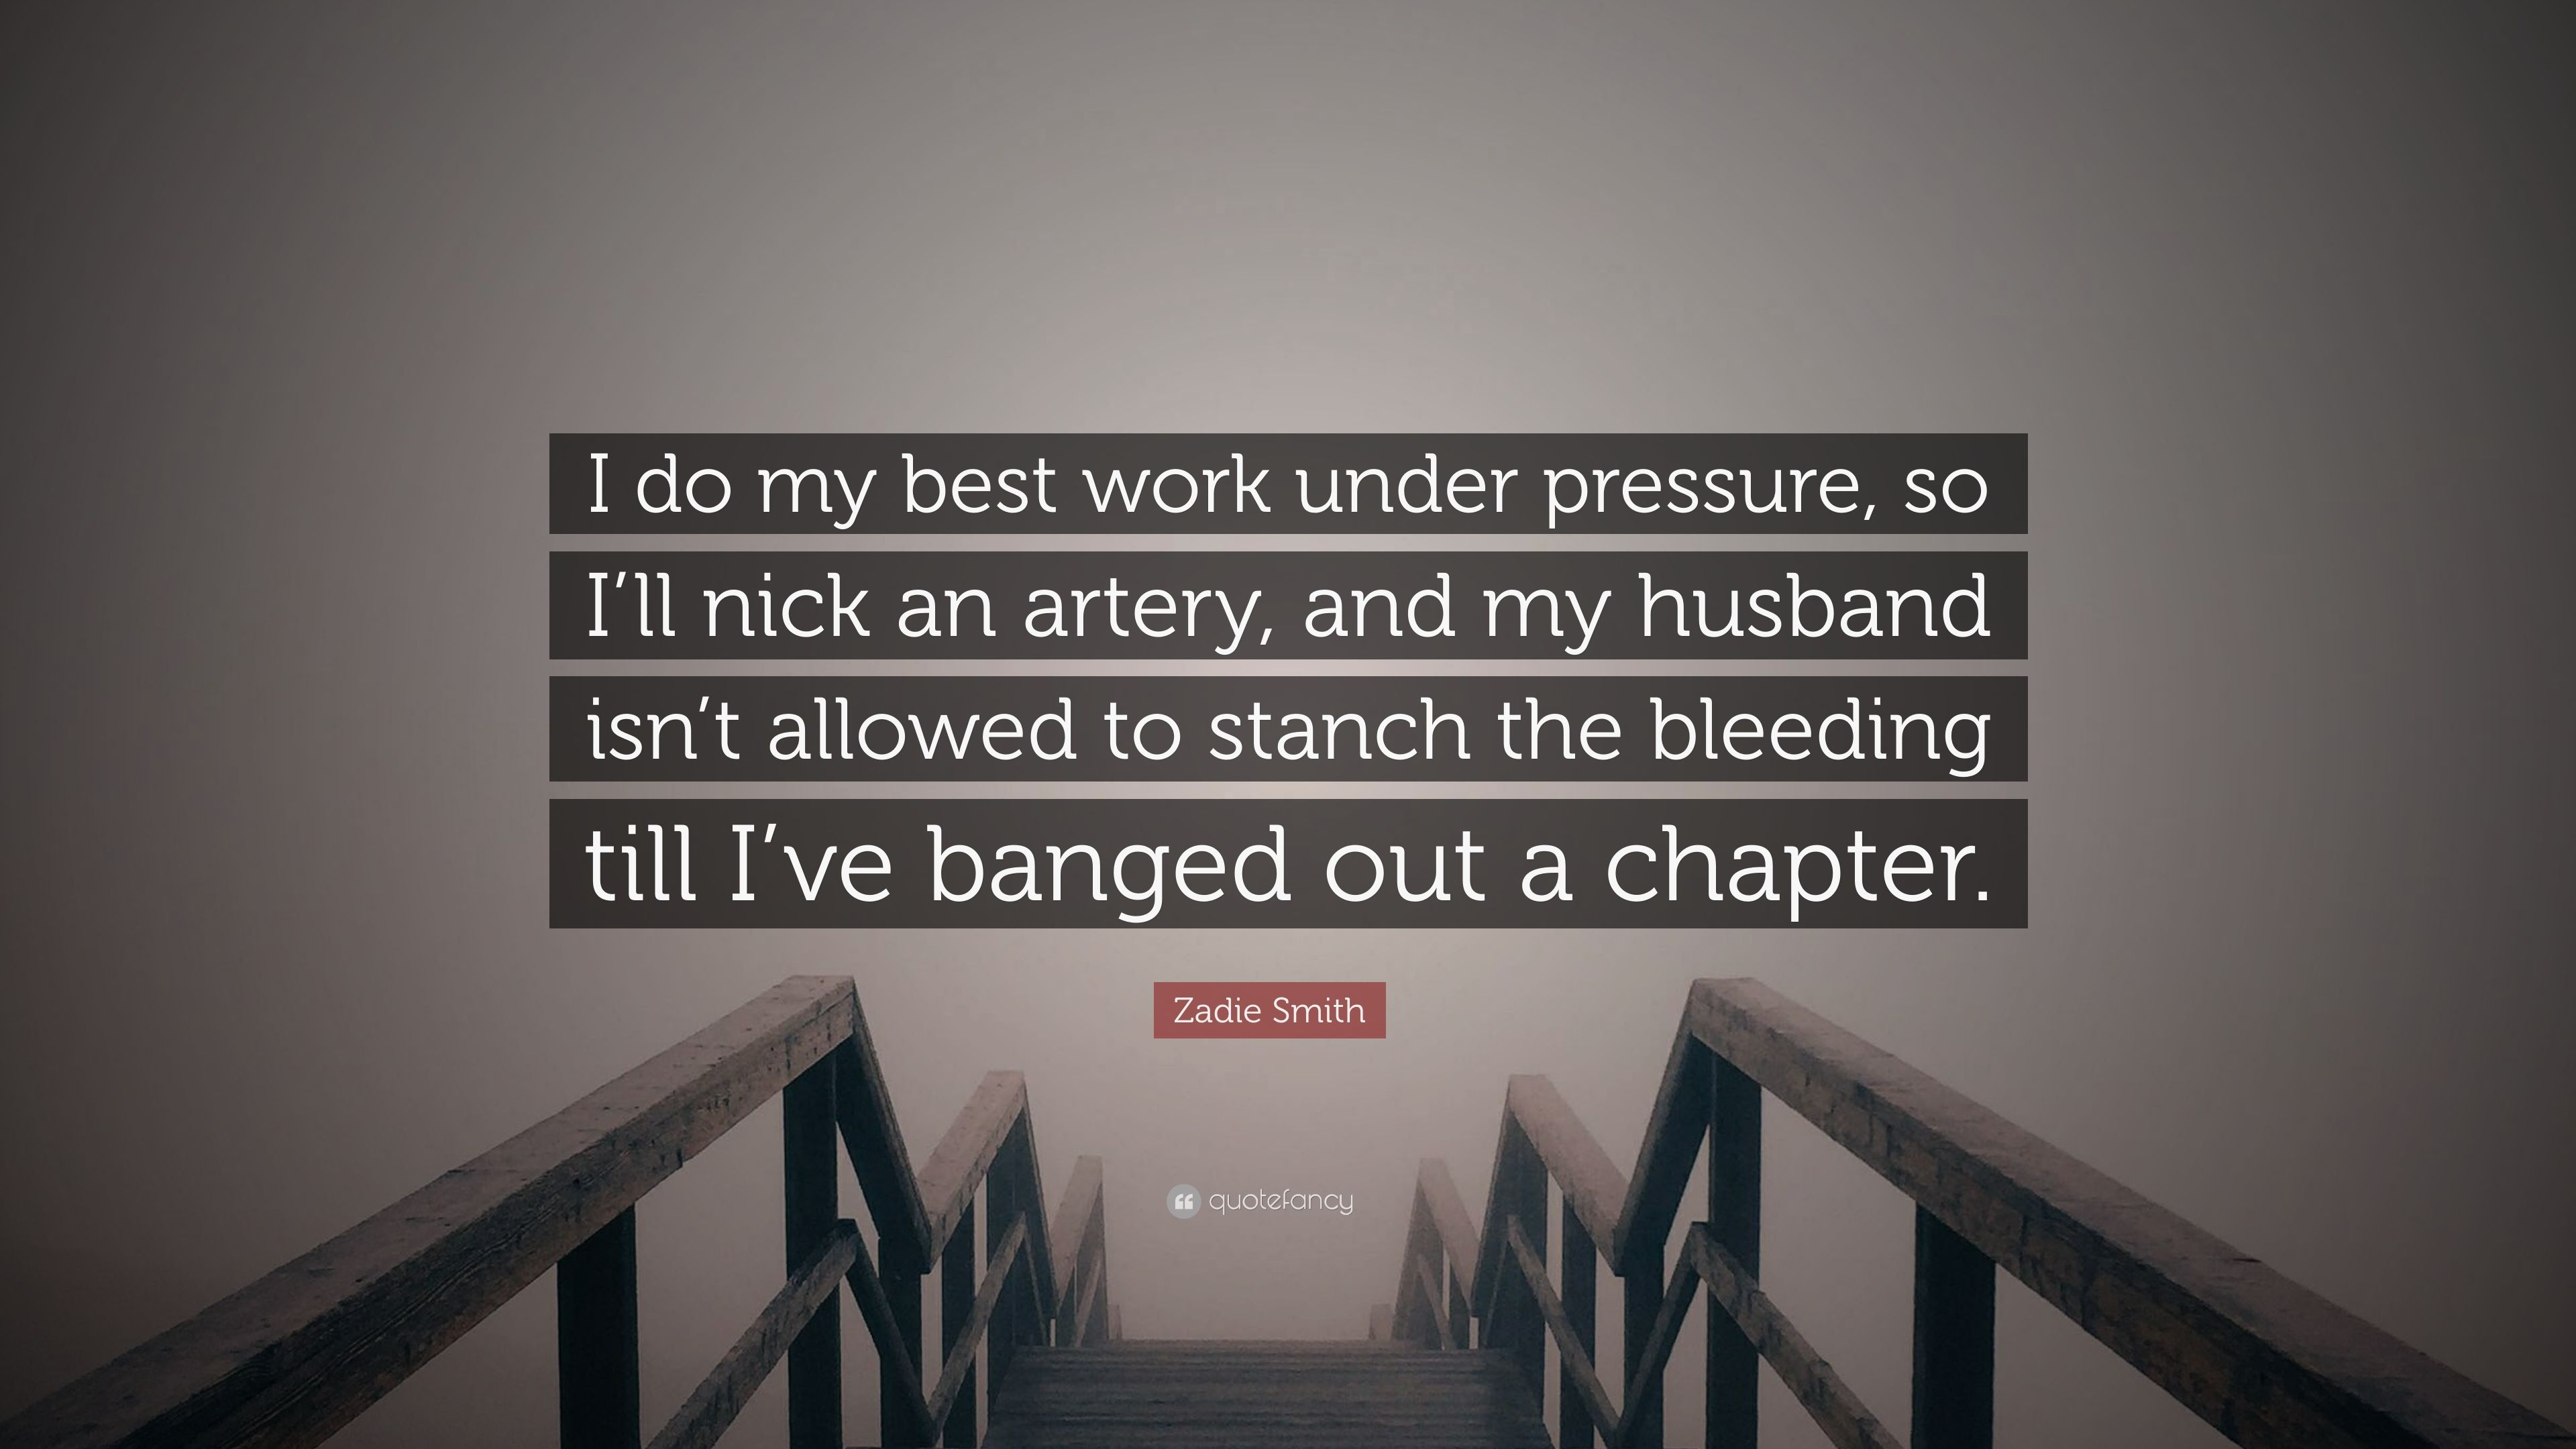 zadie smith quote i do my best work under pressure so i